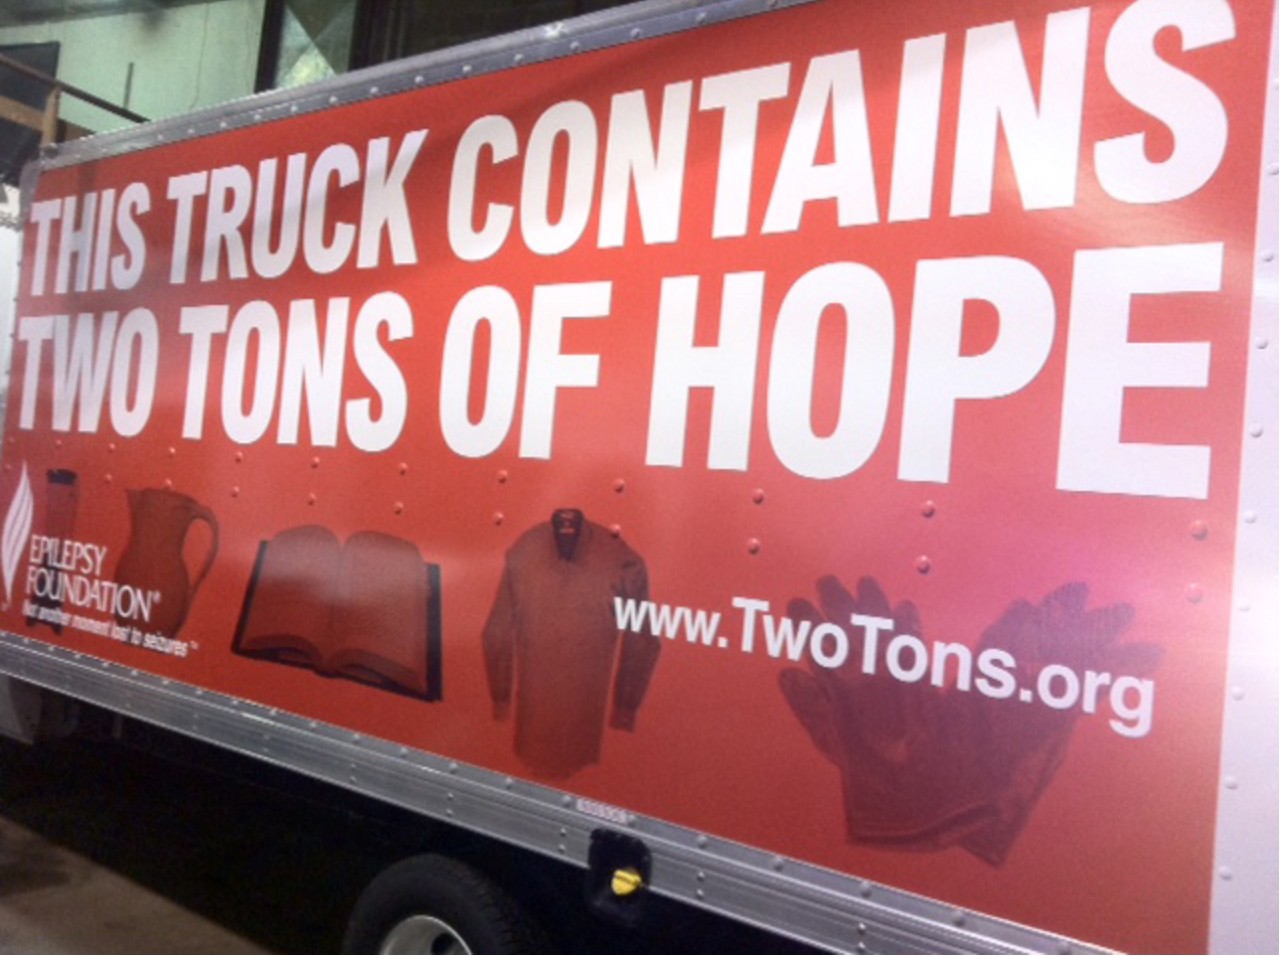 this-truck-contains-two-tons-of-hope